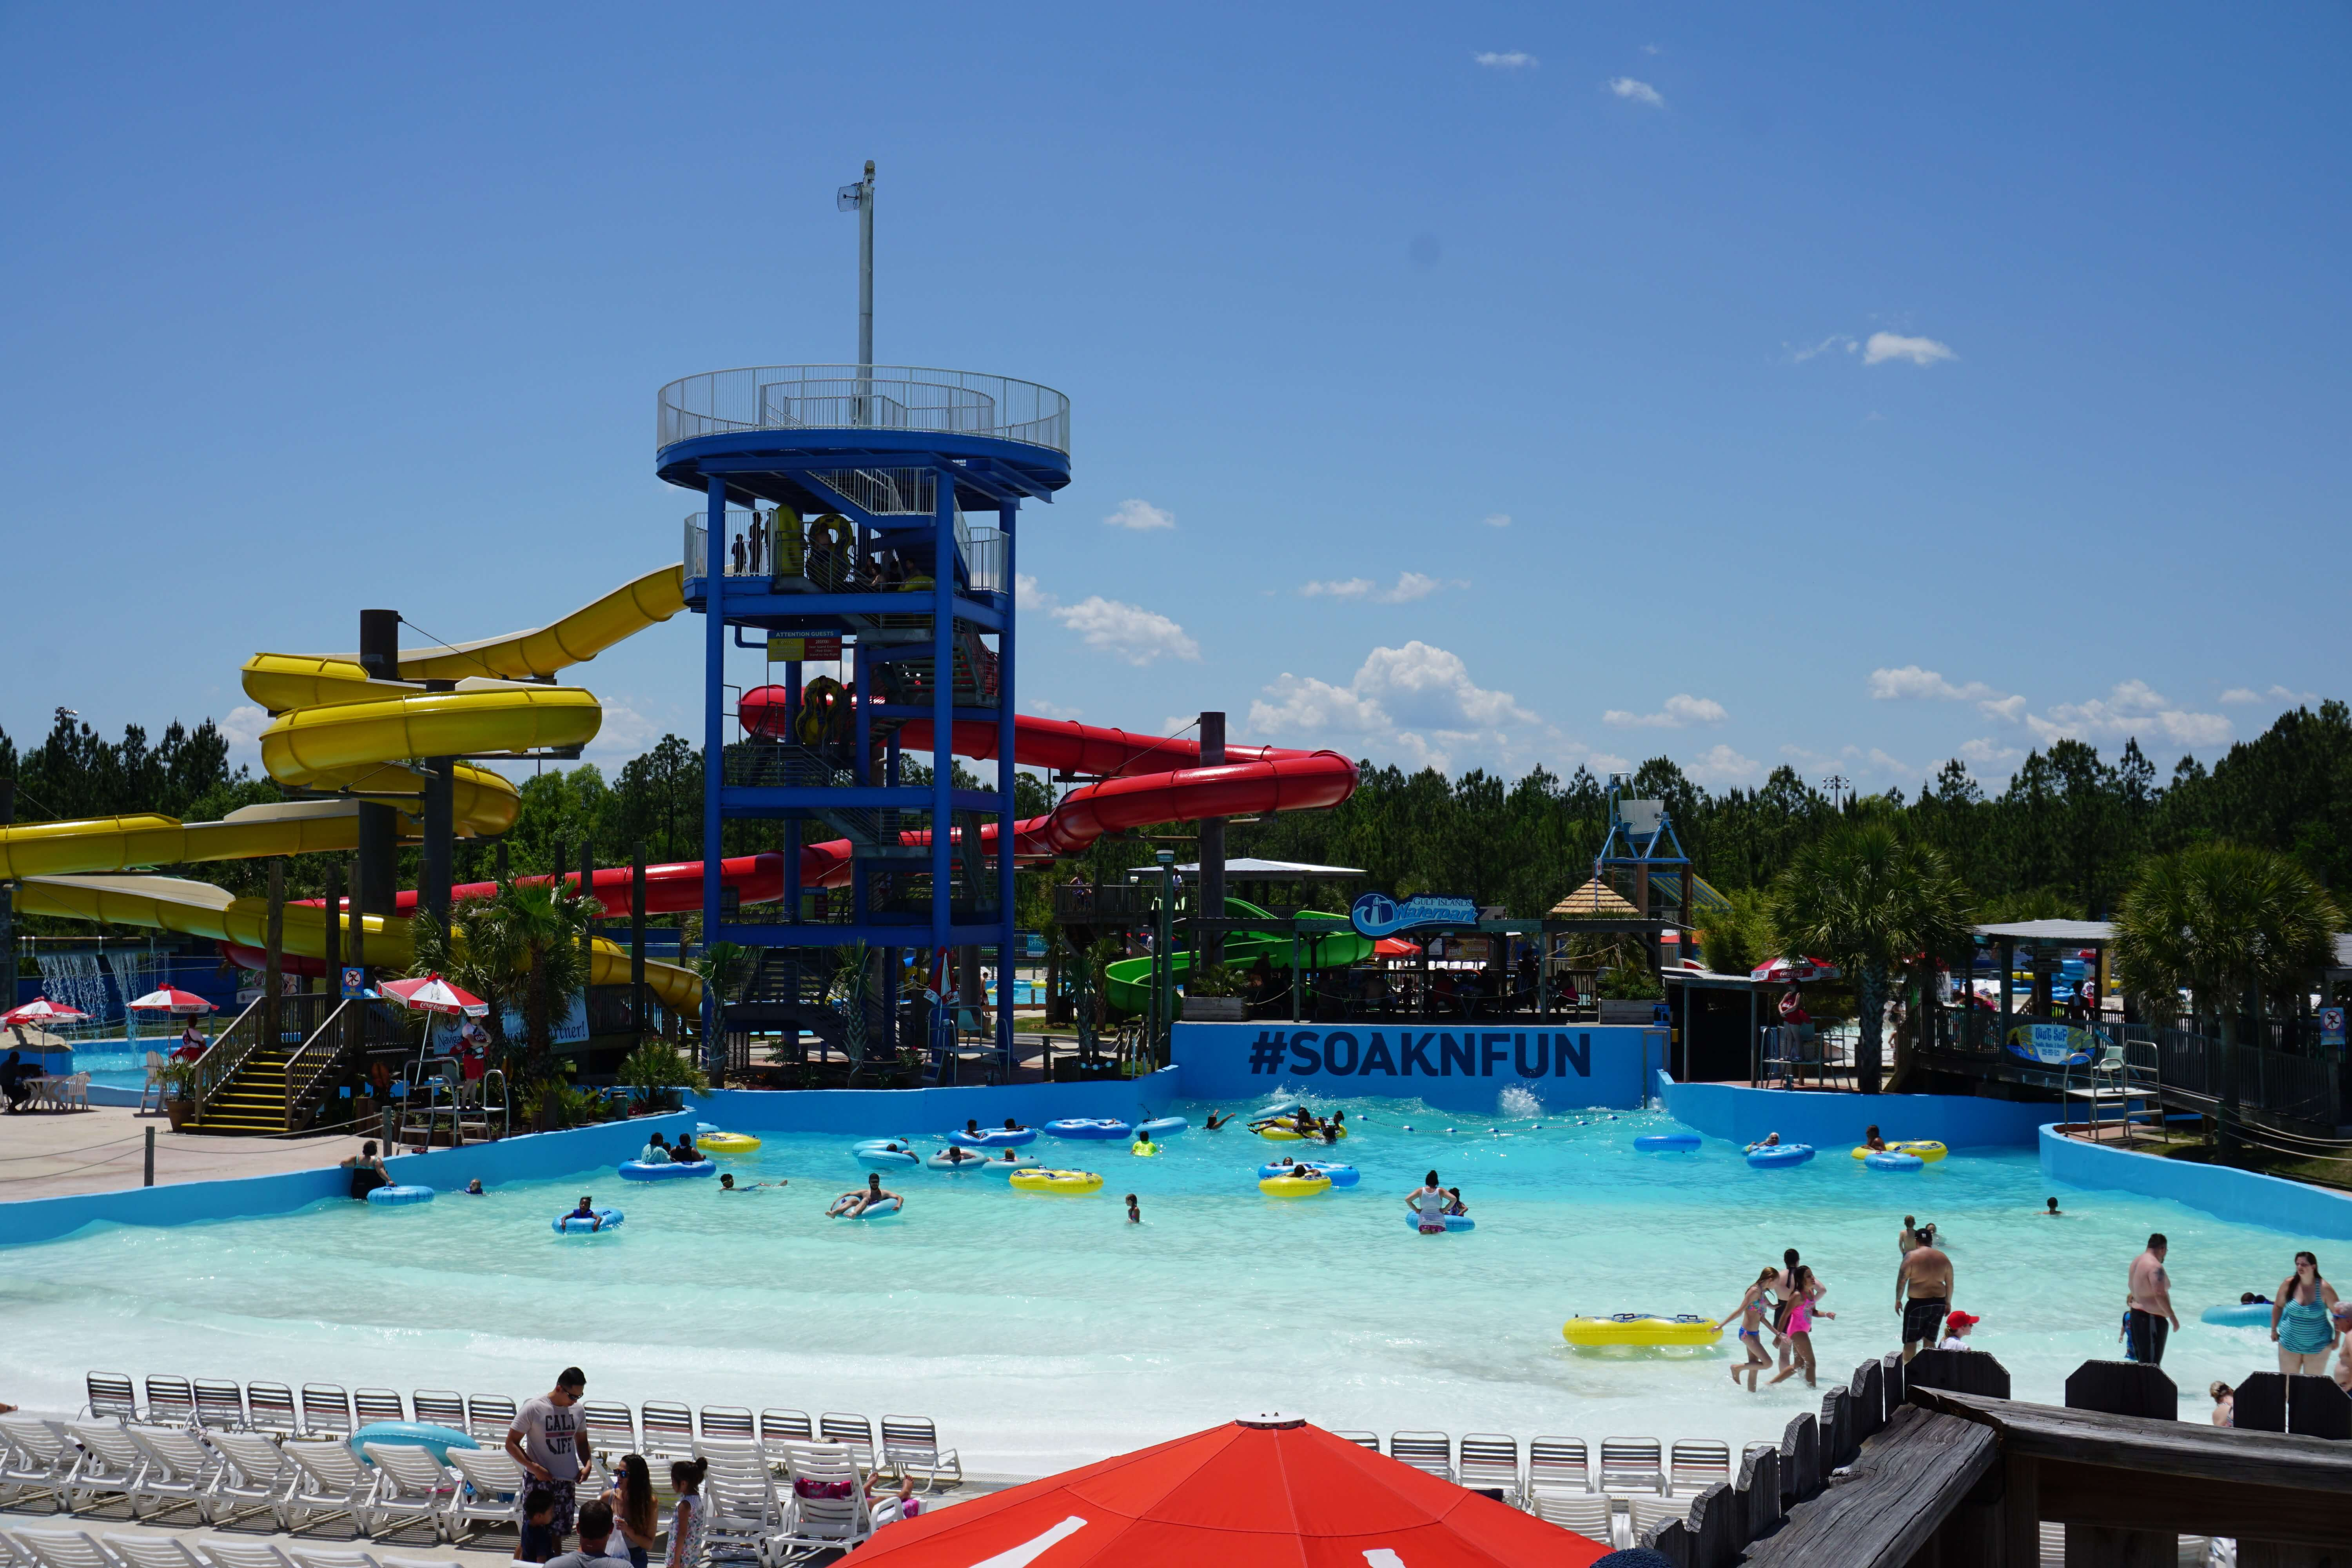 wide view of various slides, wave pool, and chairs at waterpark